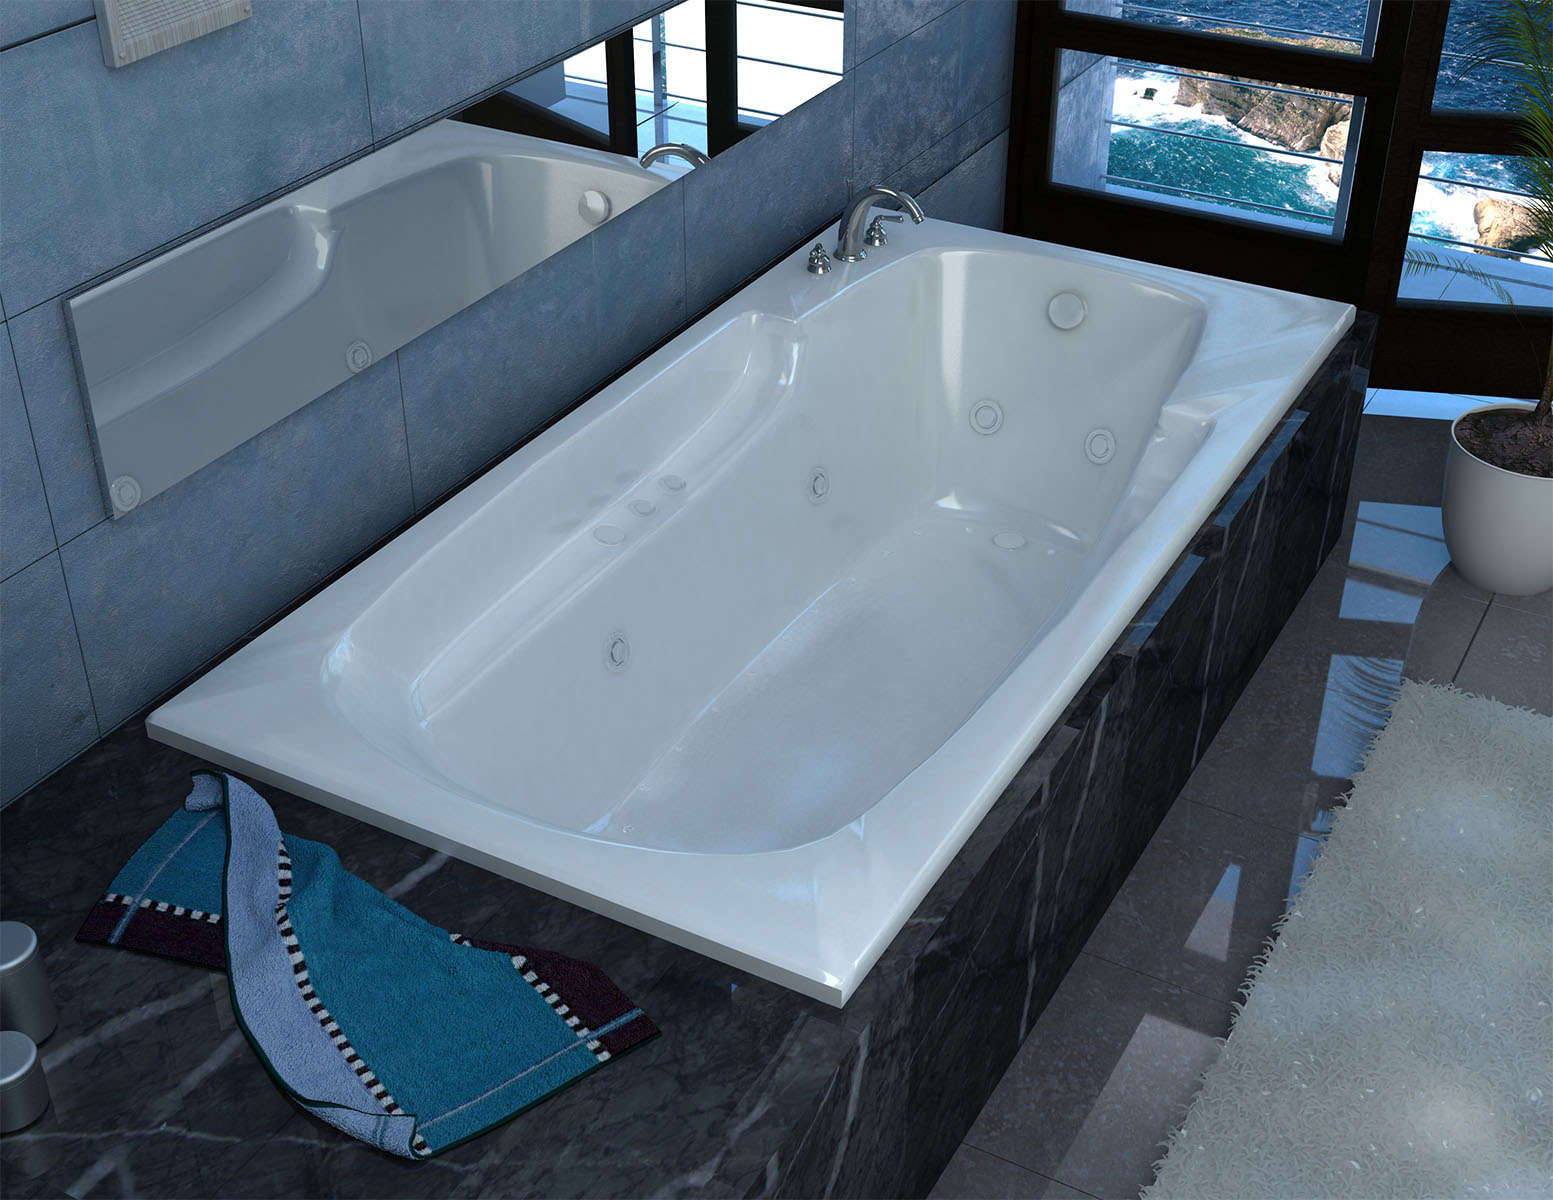 Aesis 32 x 60 Rectangular Air & Whirlpool Jetted Bathtub